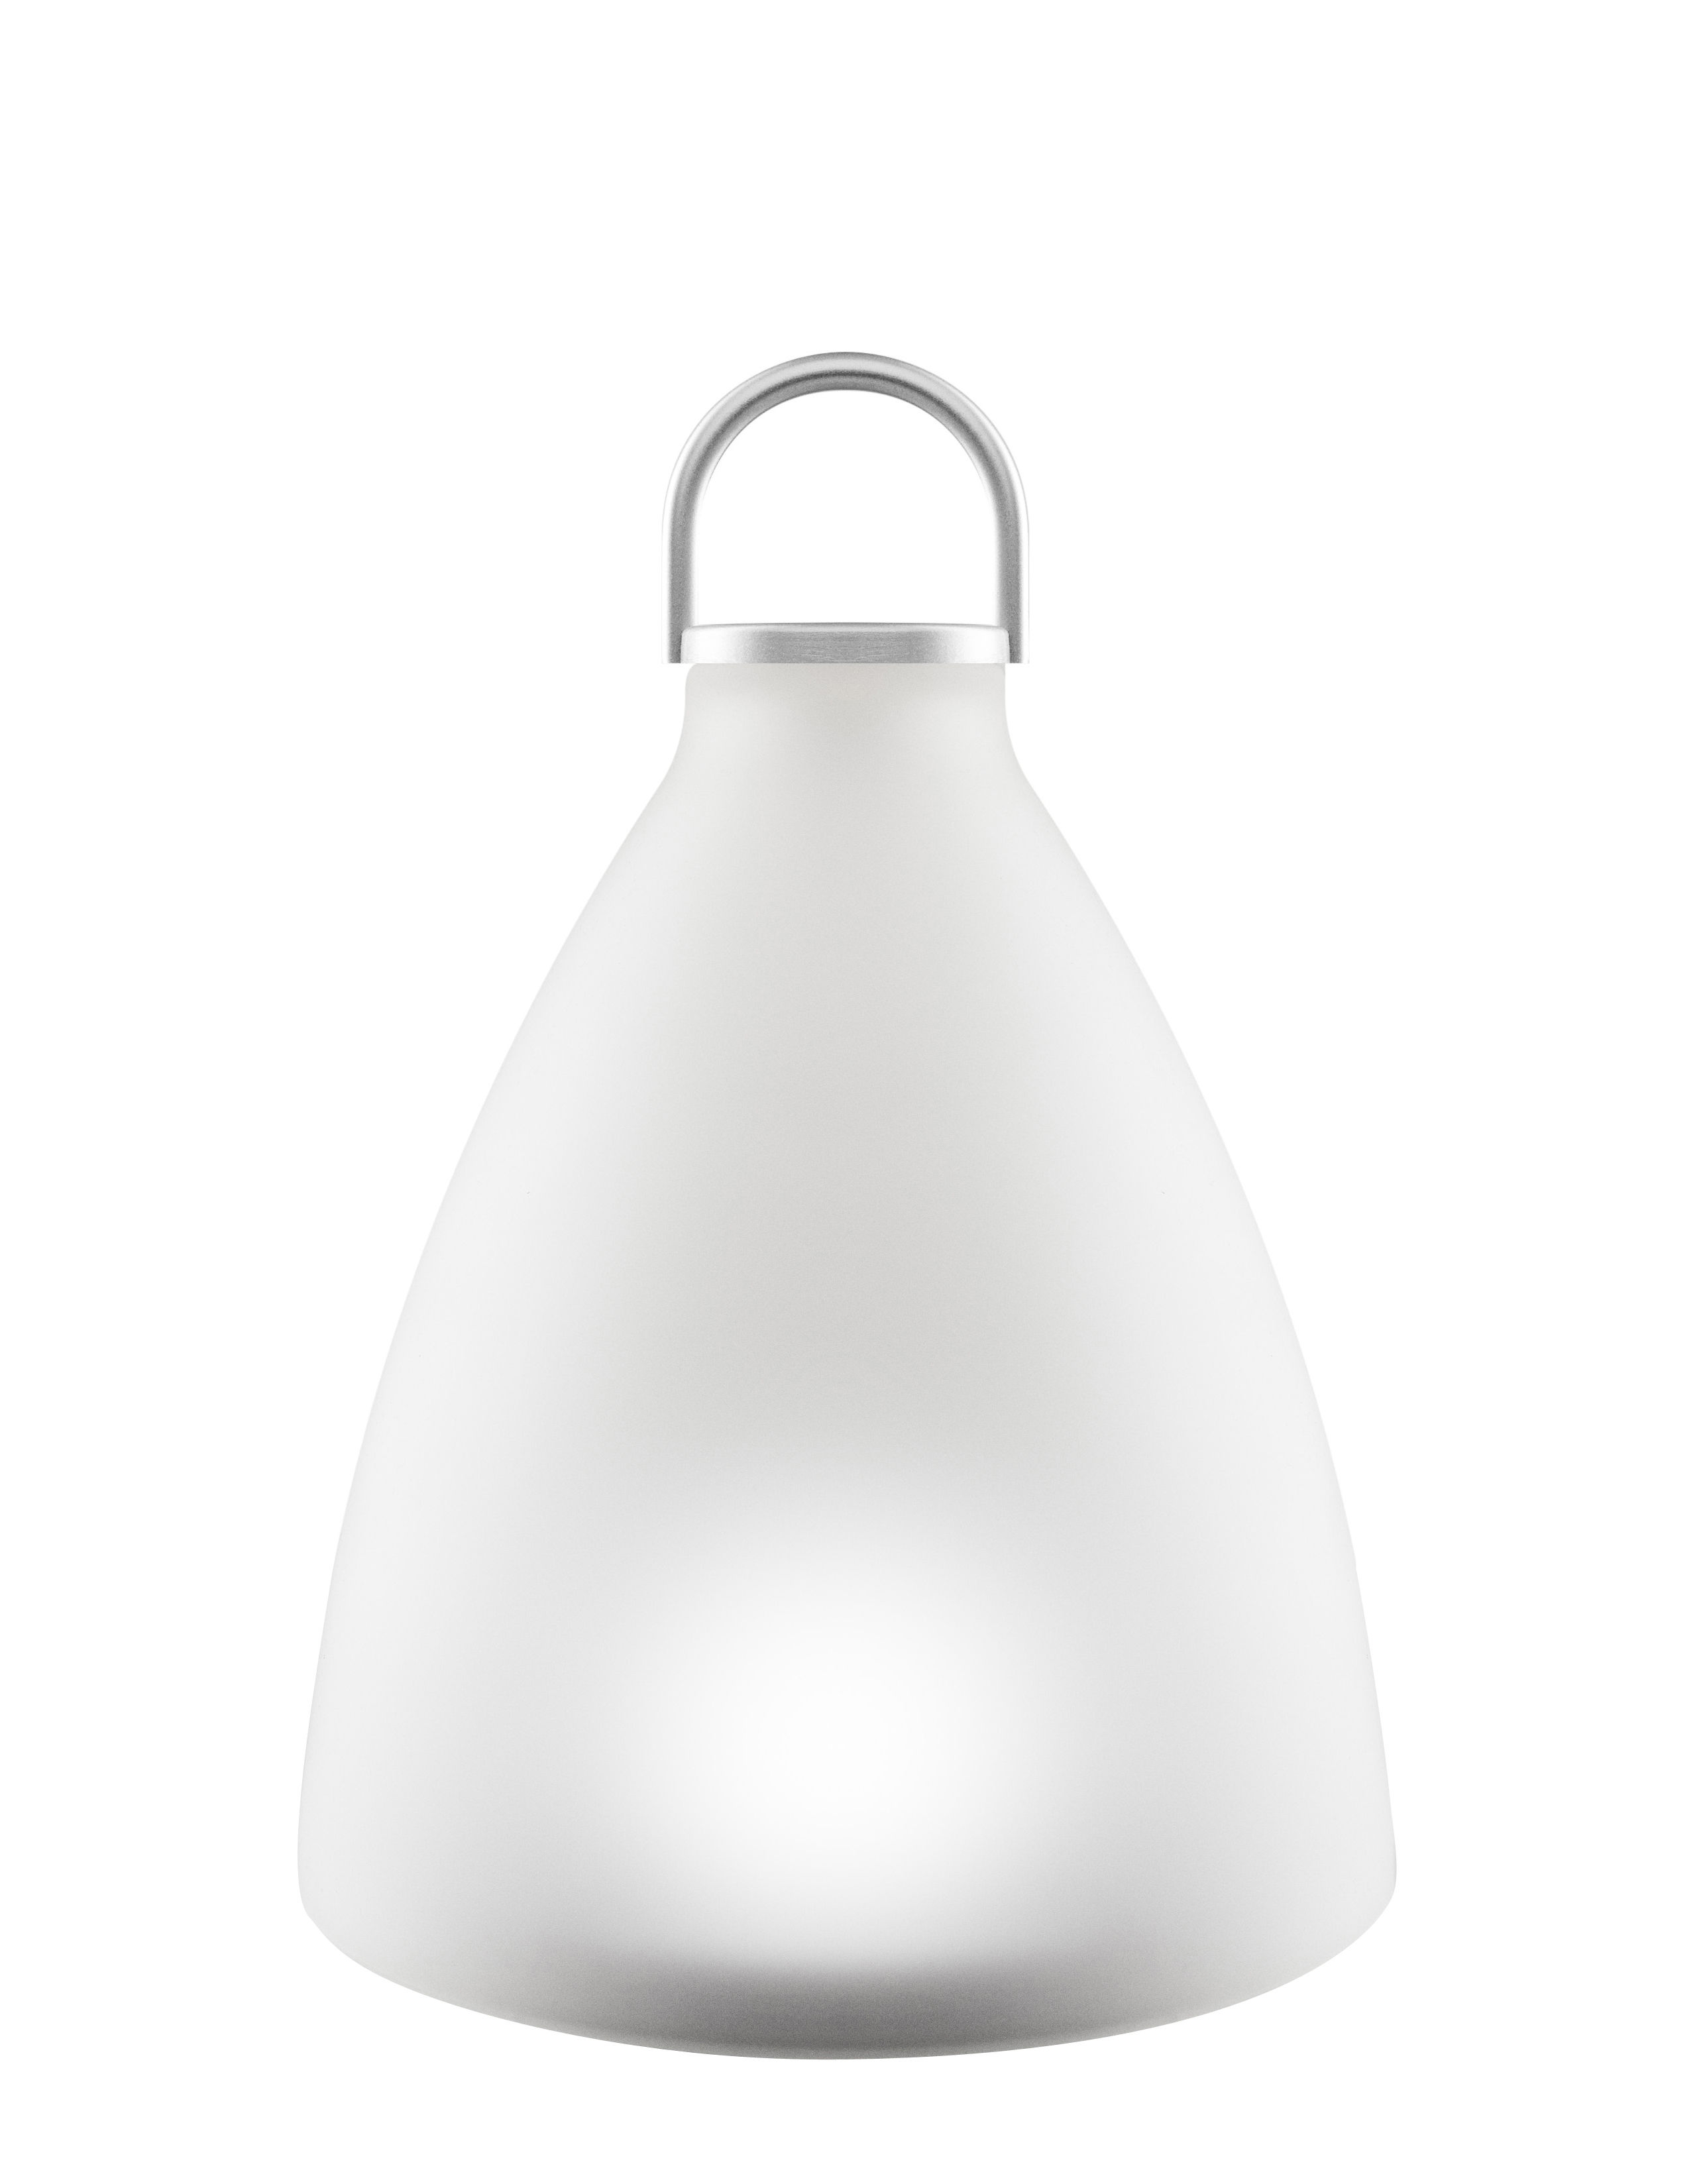 Lighting - Table Lamps - Sunlight Bell Small Solar lamp - / Wireless - H 20 cm by Eva Solo - White - Anodized aluminium, Pressed frosted glass